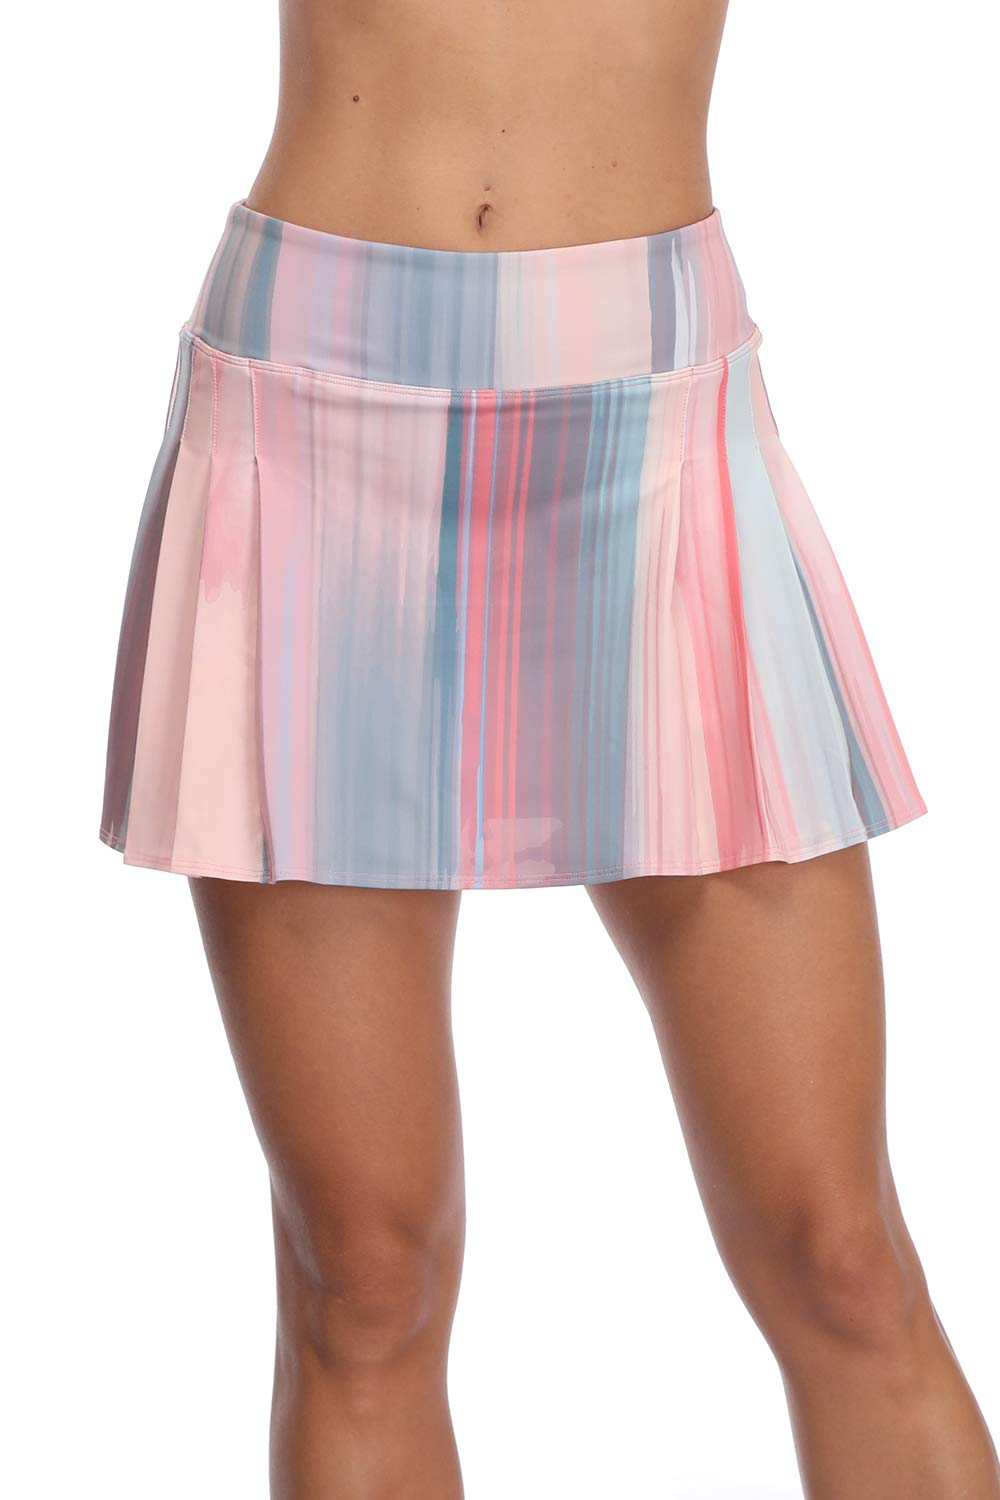 32e-SANERYI Women's Pleated Elastic Quick-Drying Tennis Skirt with Shorts Running Skort-14XL Pink by 32e-SANERYI